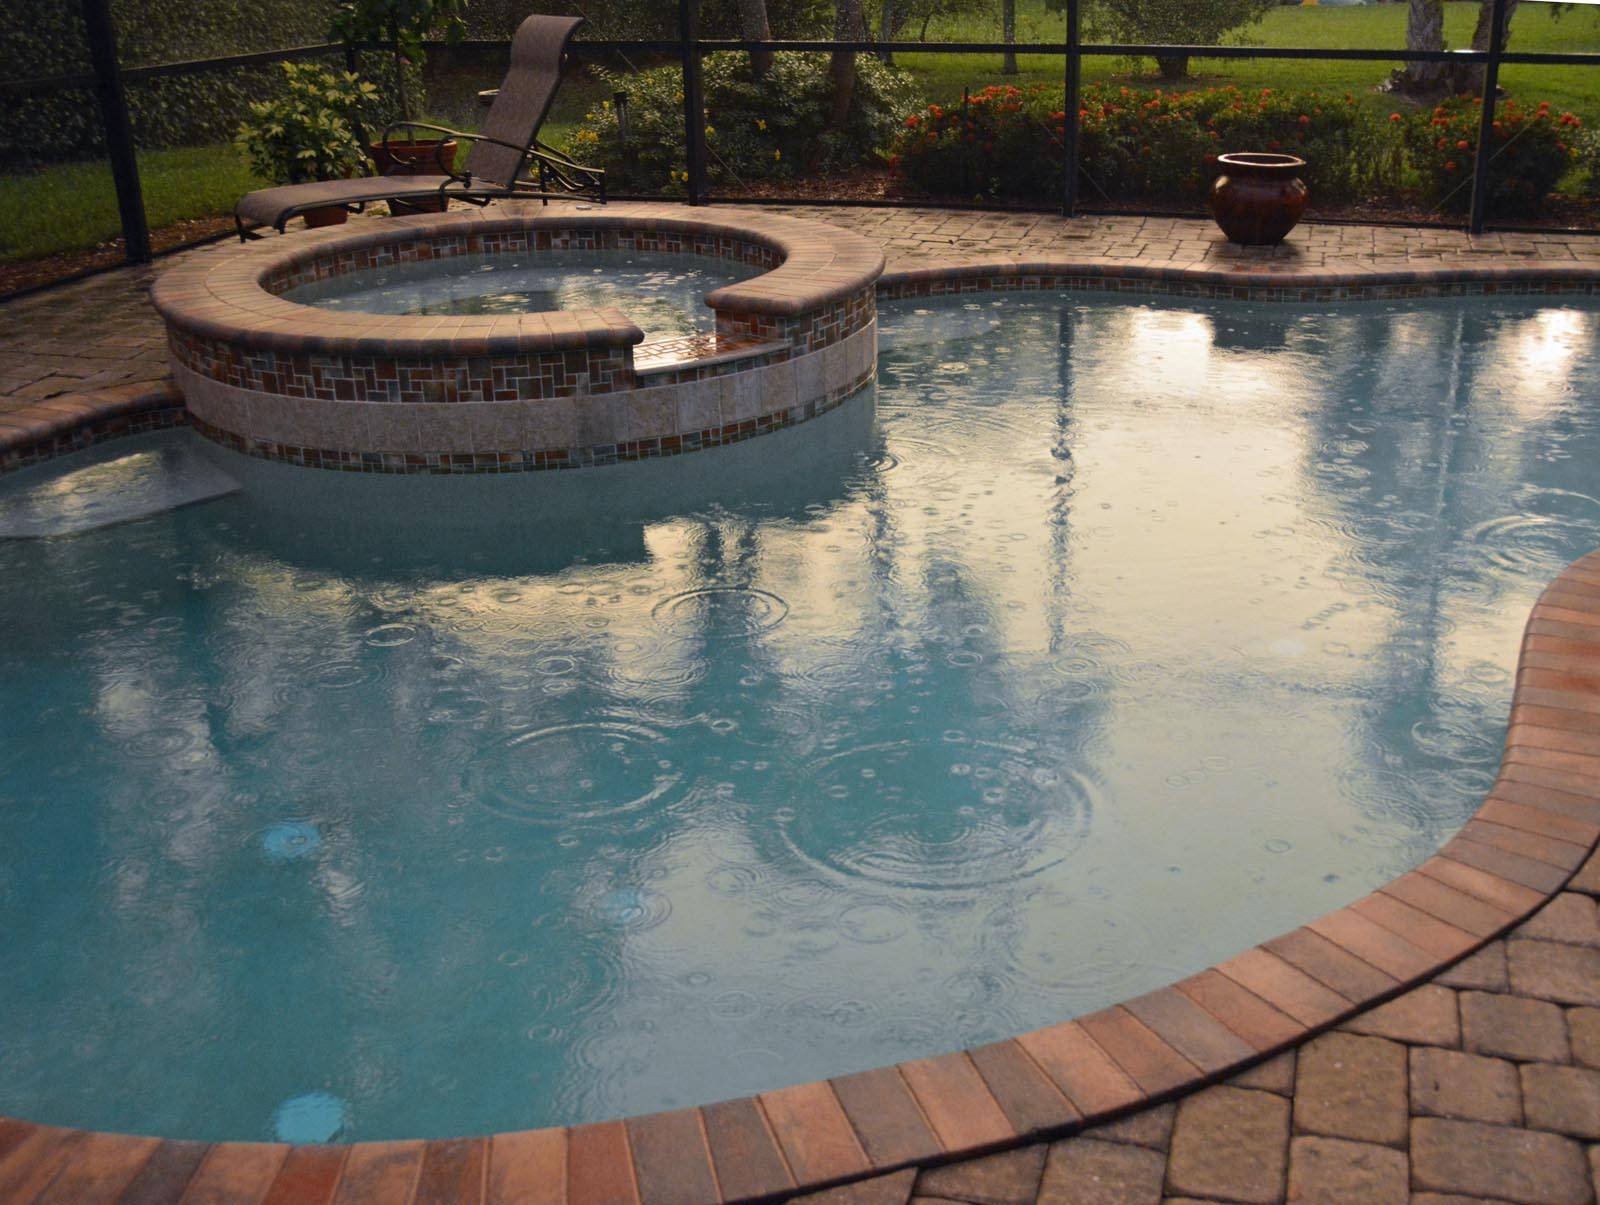 A circular hot tub and circles in the pool – A GATOR IN NAPLES